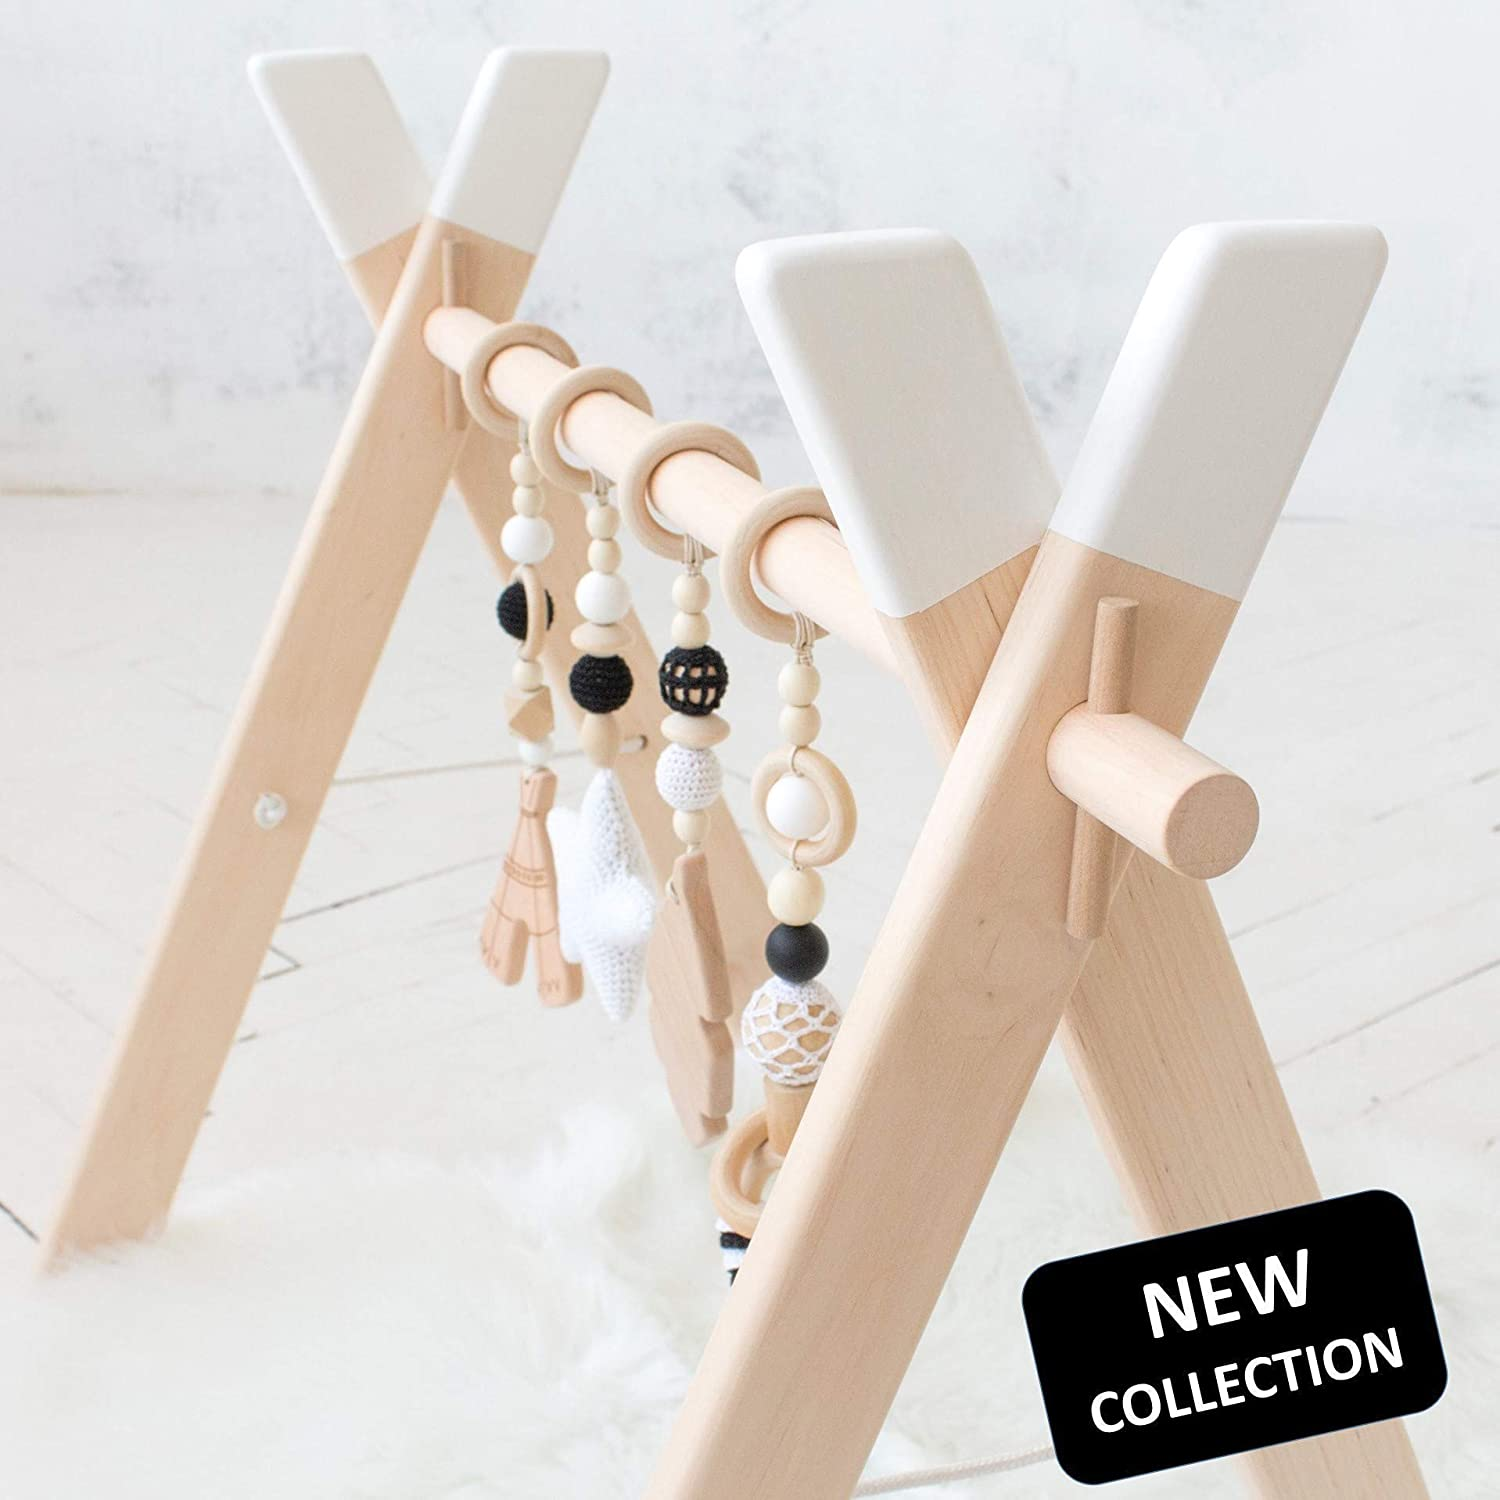 Scandinavian nursery inspired white Wood baby gym frame and activity gym with four mobiles by LanaCrocheting. Foldable Baby Play Gym, Hanging bar, Newborn Gift Baby shower non toxic, natural